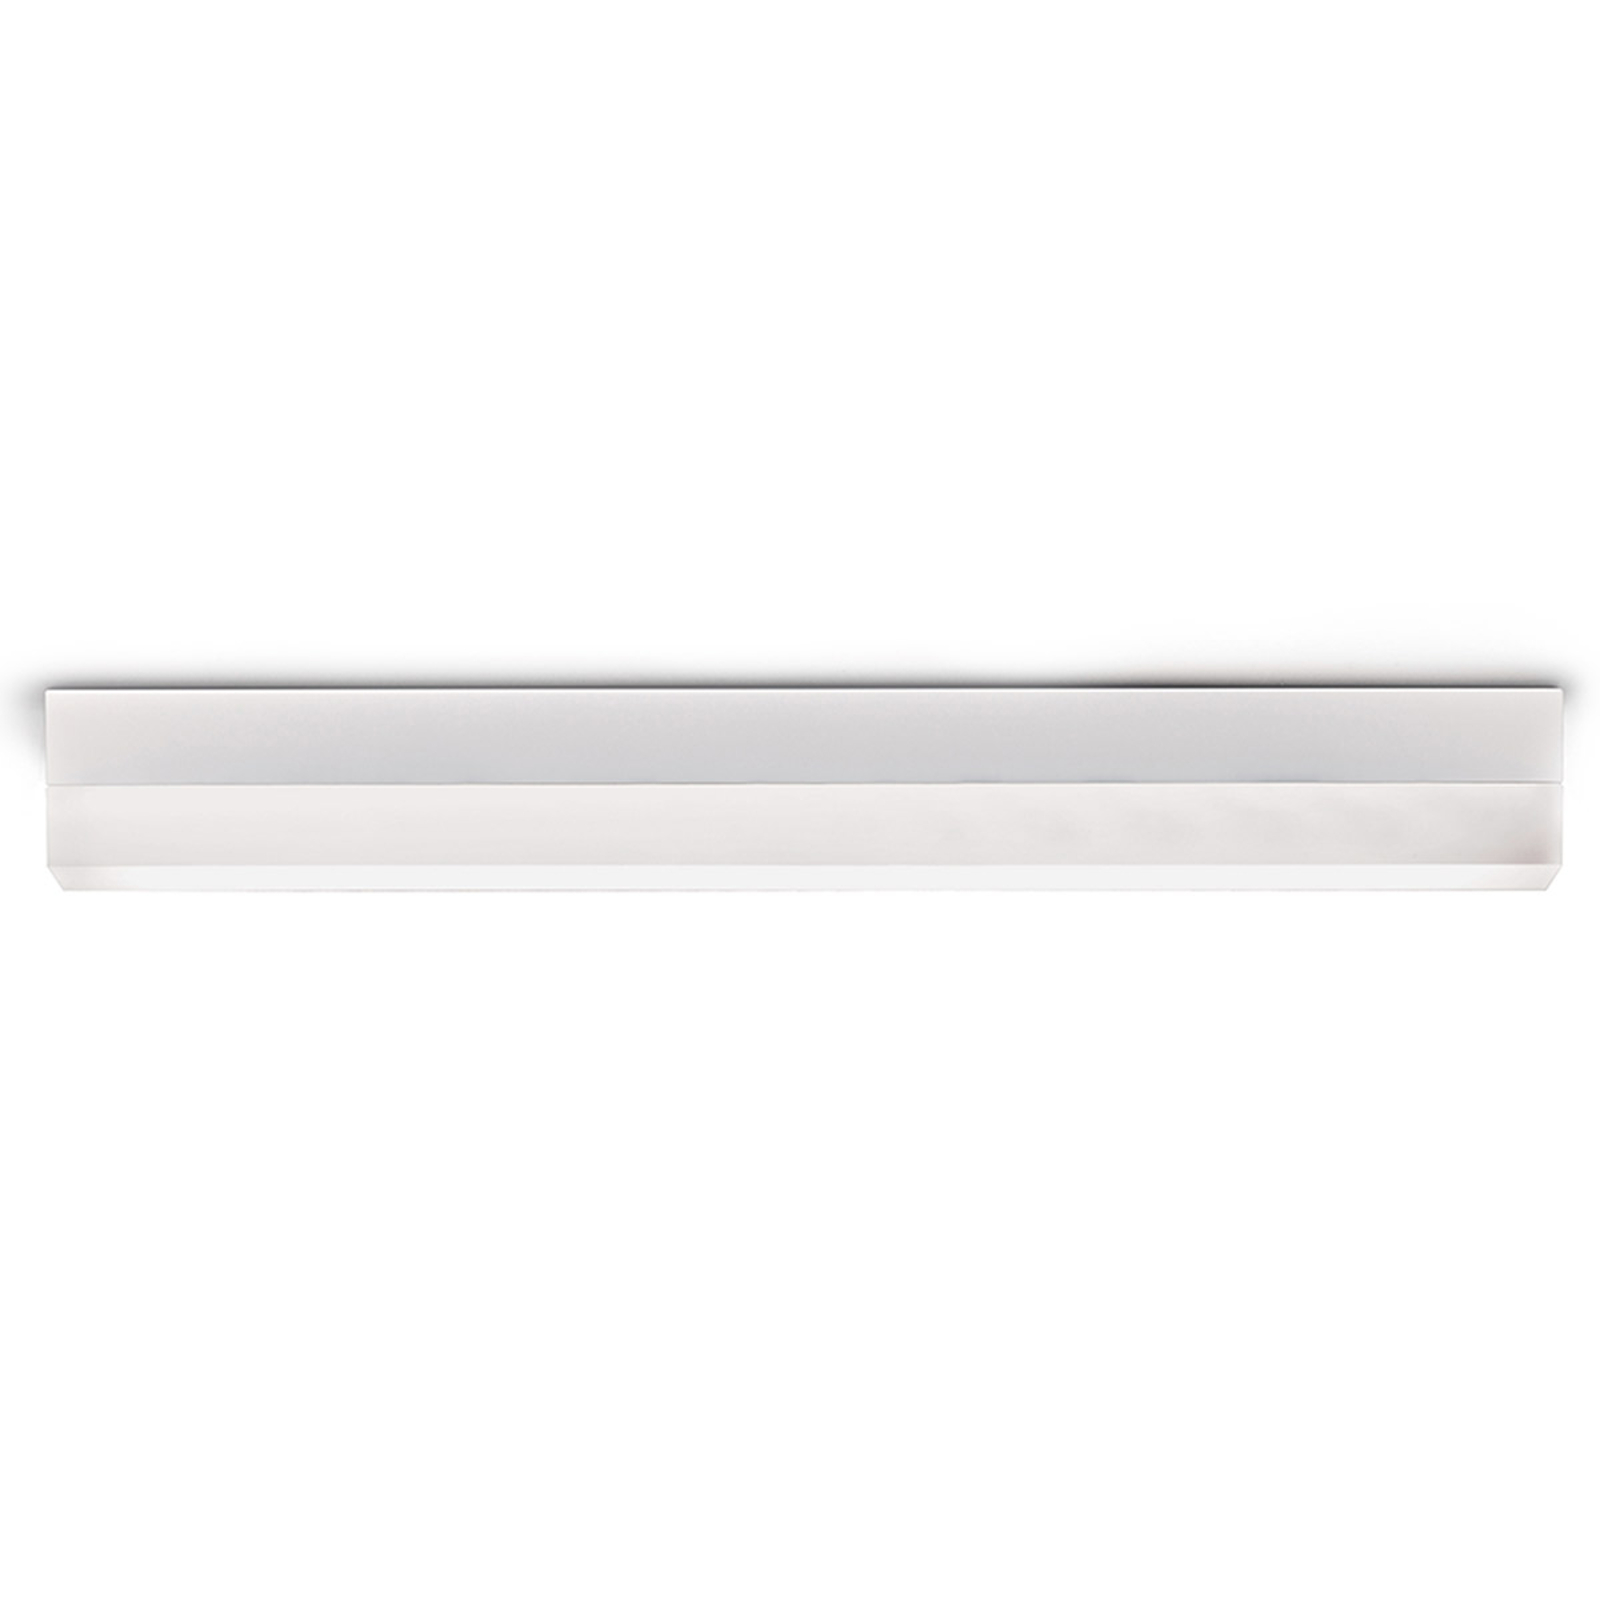 Plafoniera LED Righa 42 W 5300 lumen bianco 90 cm